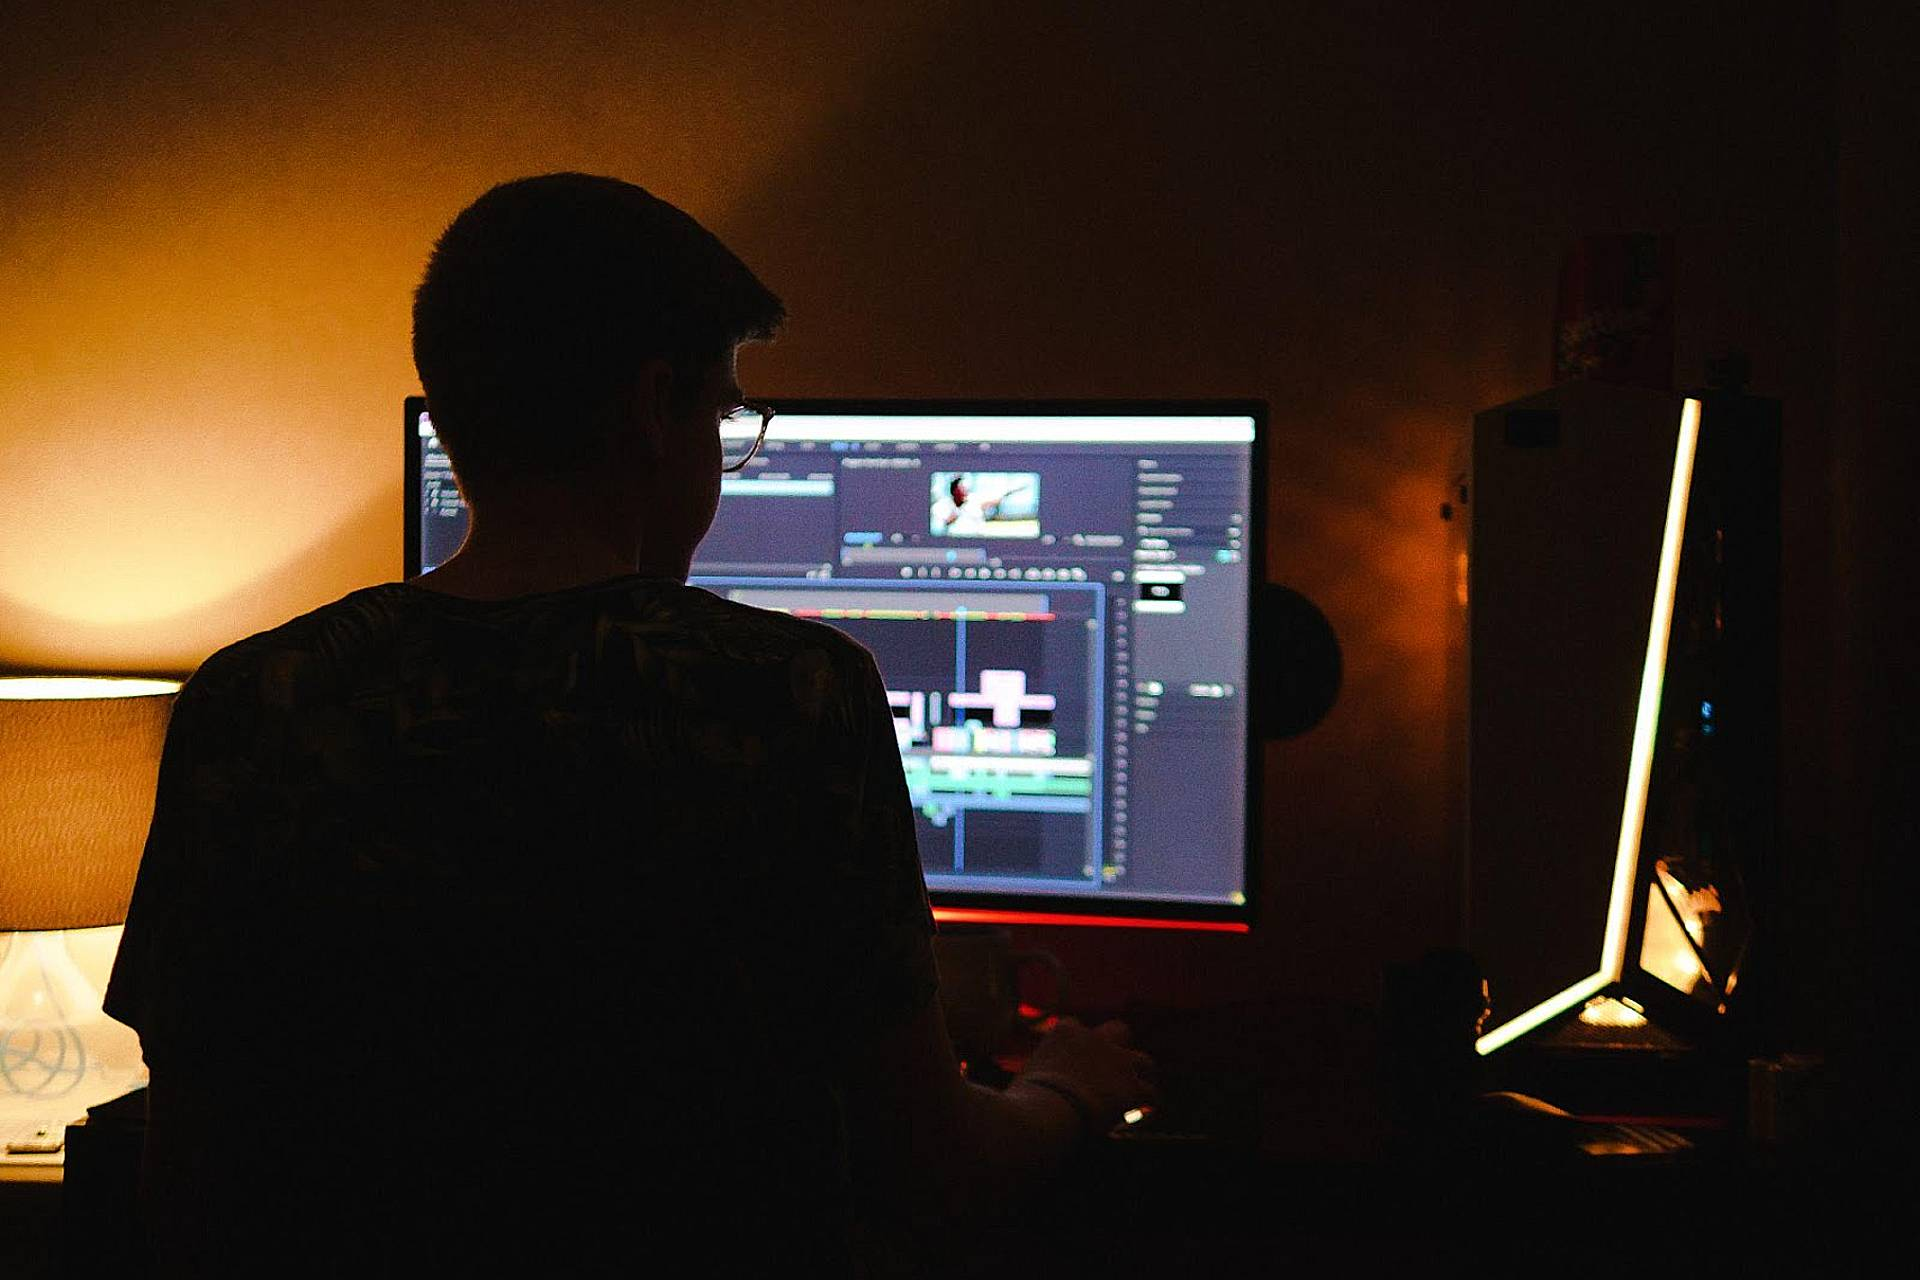 High-quality video editing has become increasingly important to our tech-saturated society. To compete, professionals need these five skills.